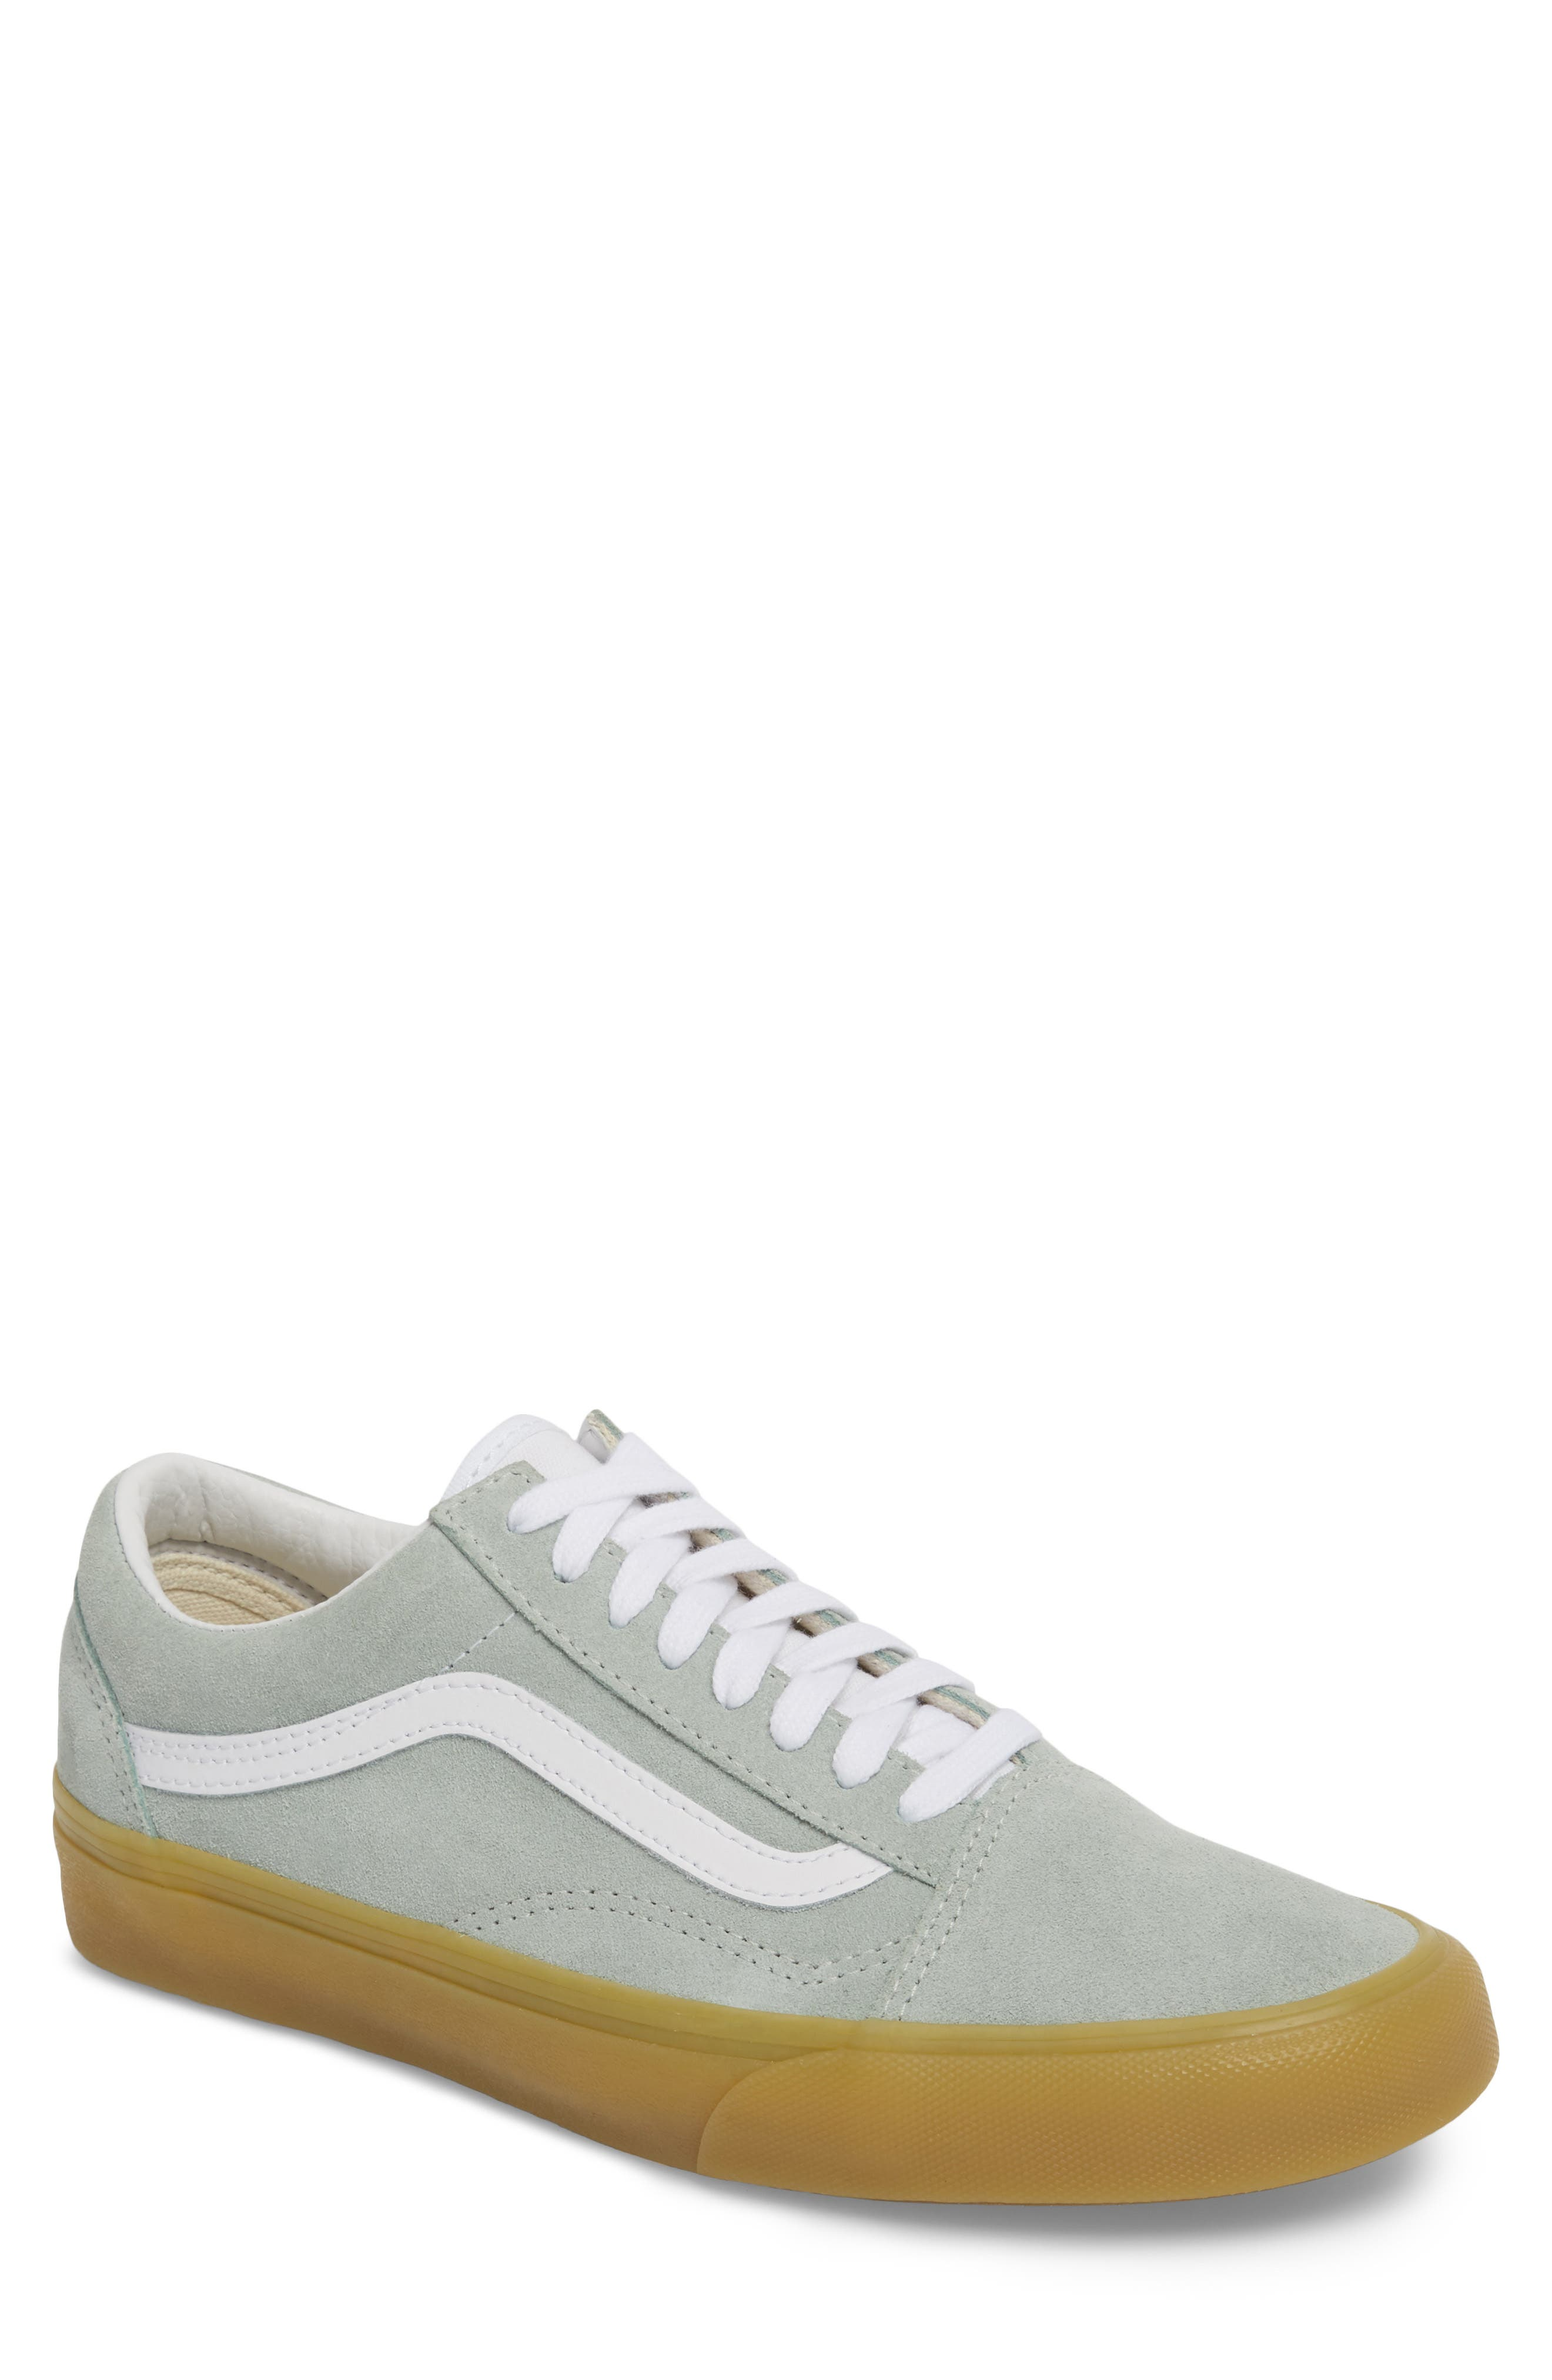 Gum Old Skool Sneaker,                         Main,                         color, 020